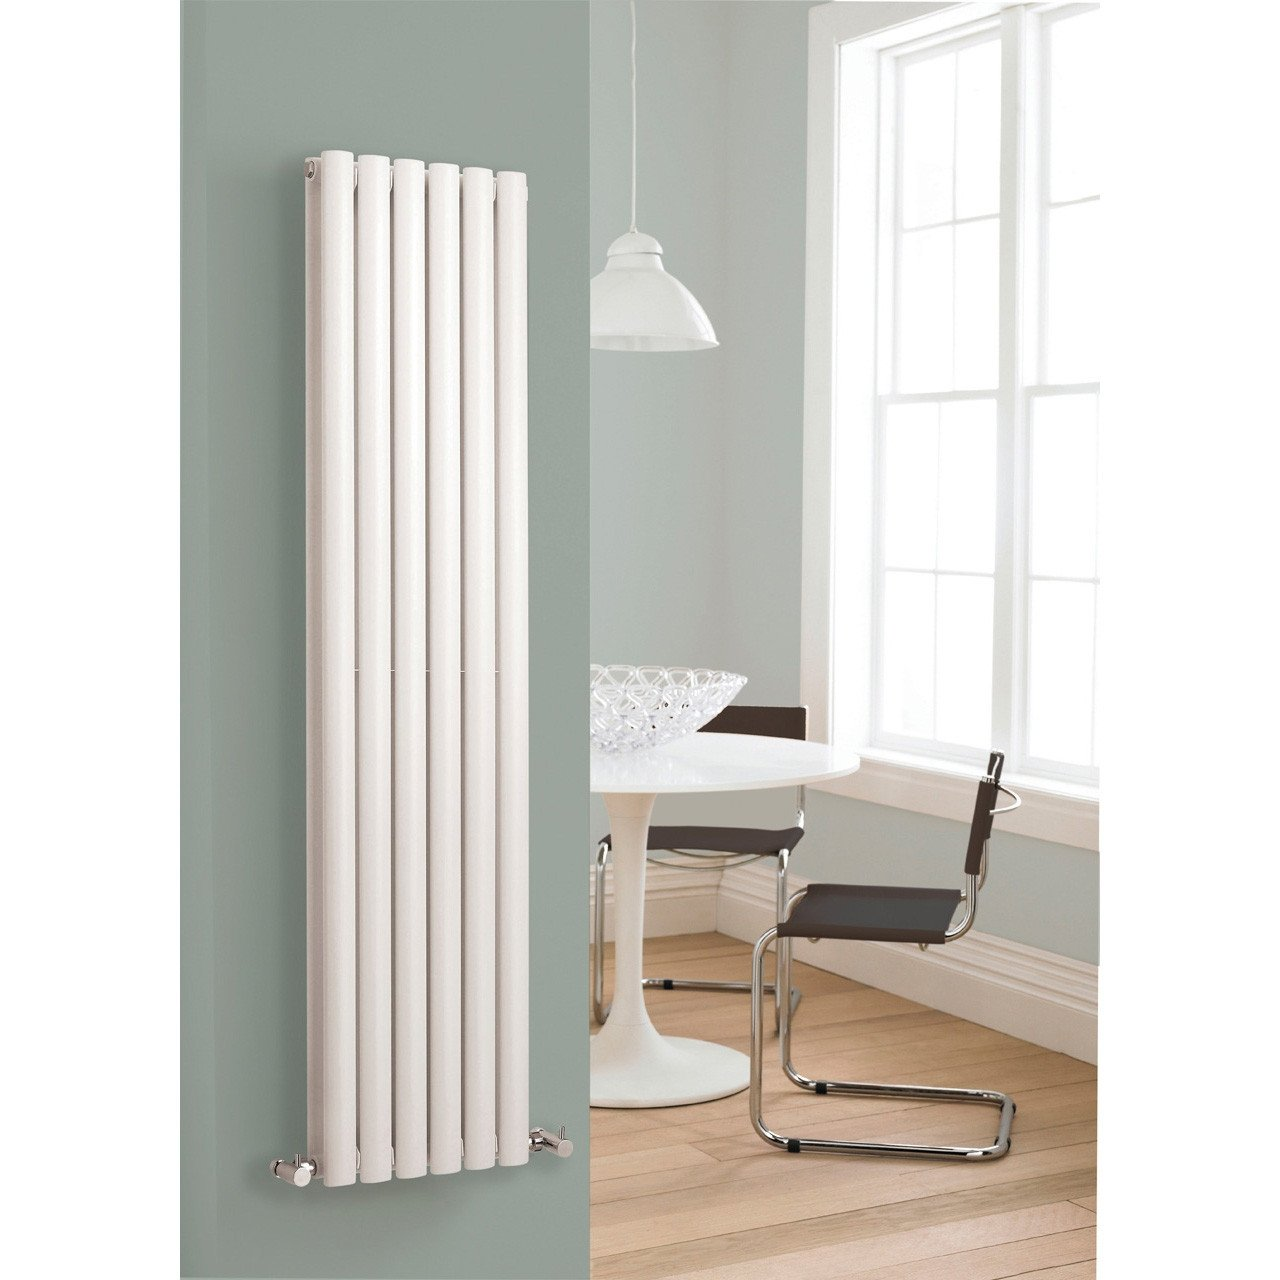 Hudson Reed Revive Double Panel Radiator 1500mm x 354mm - HL368